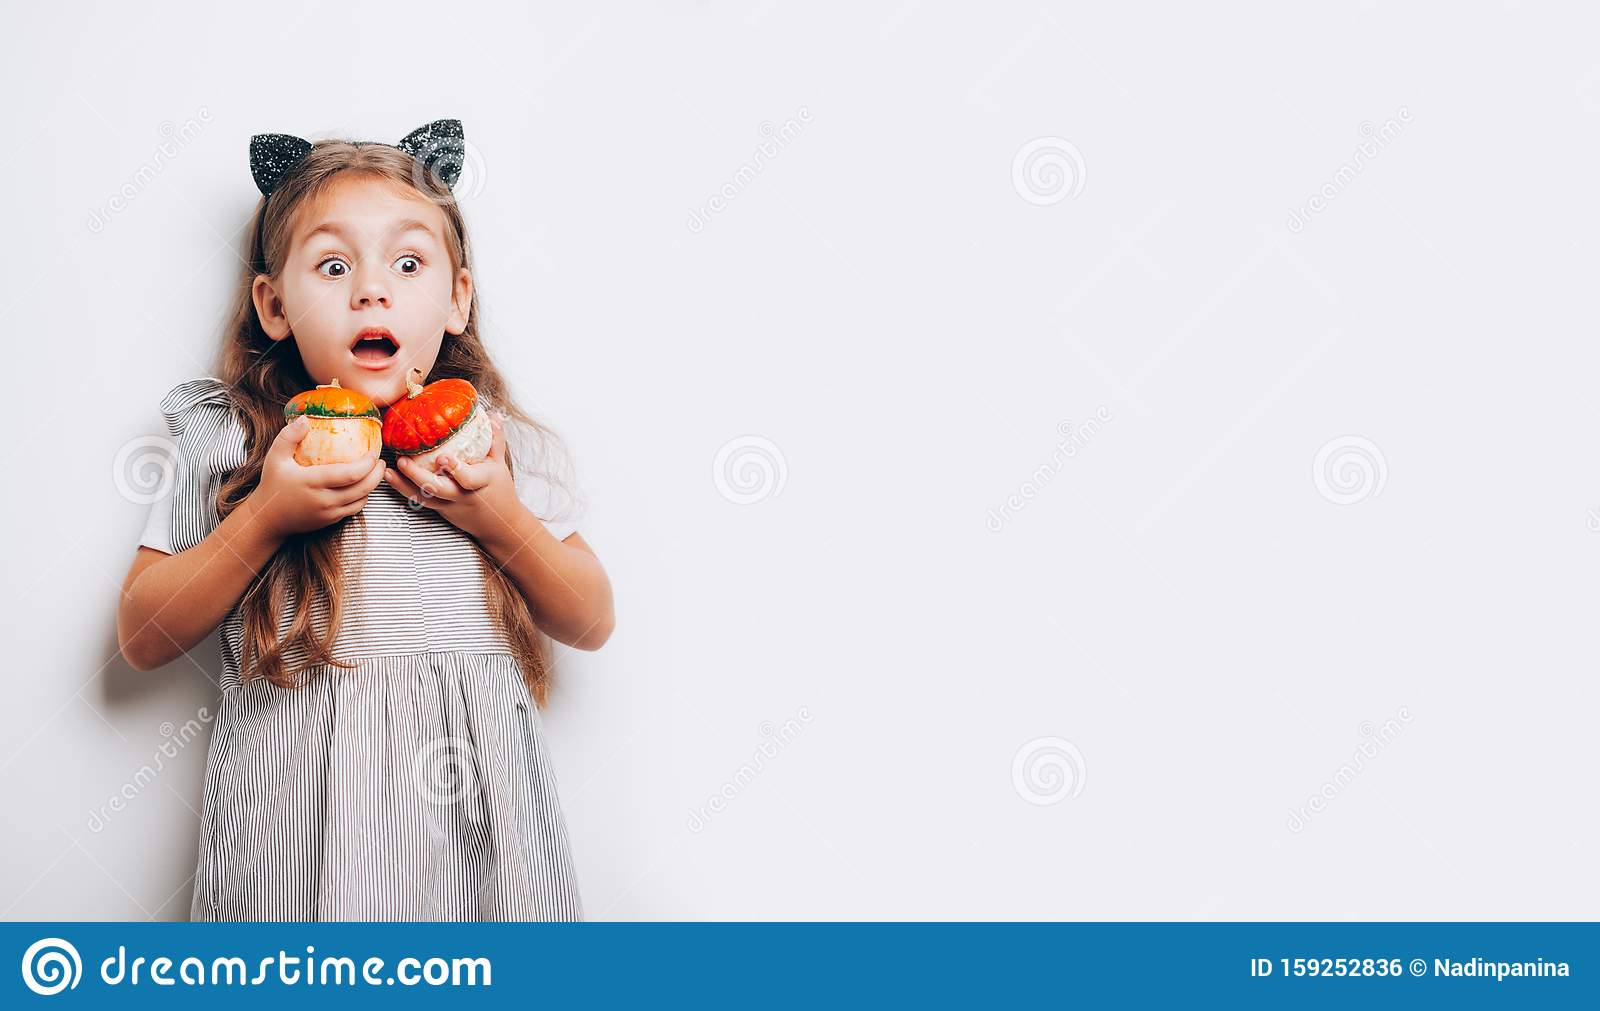 Scared little girl holding decorative pumpkins on white background